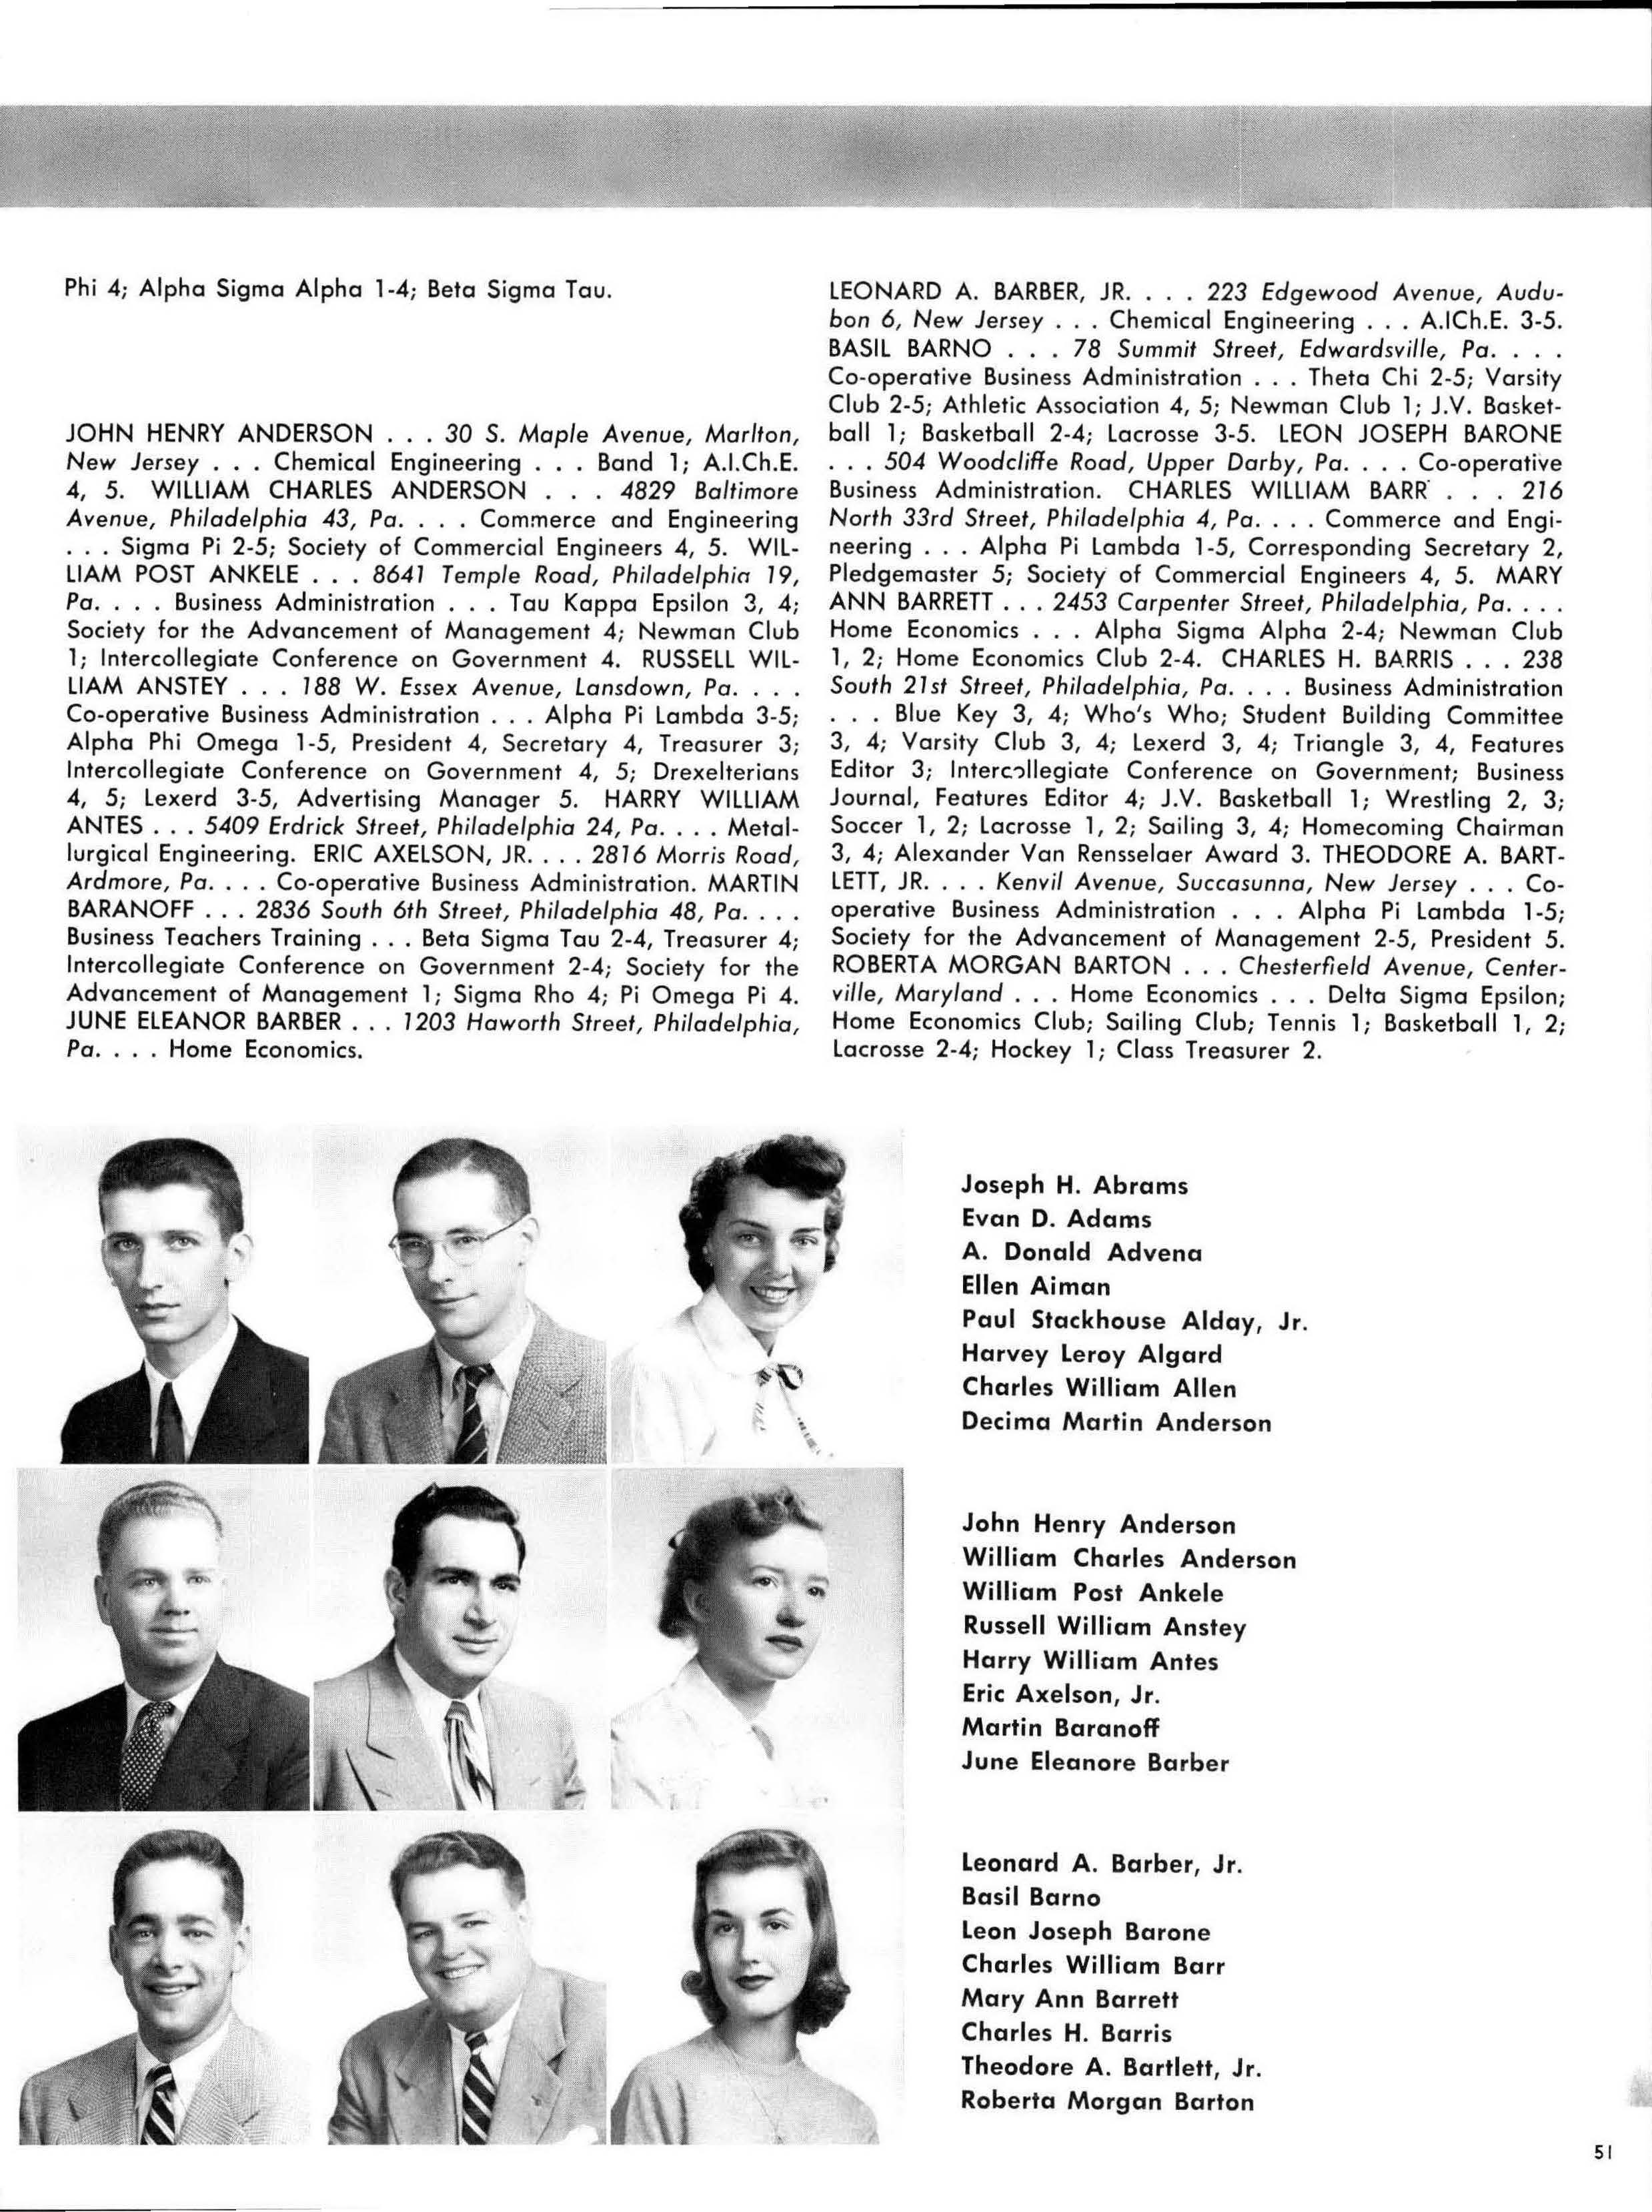 The 1953 Lexerd yearbook page featuring Chuck Barris. Photo courtesy University Archives.